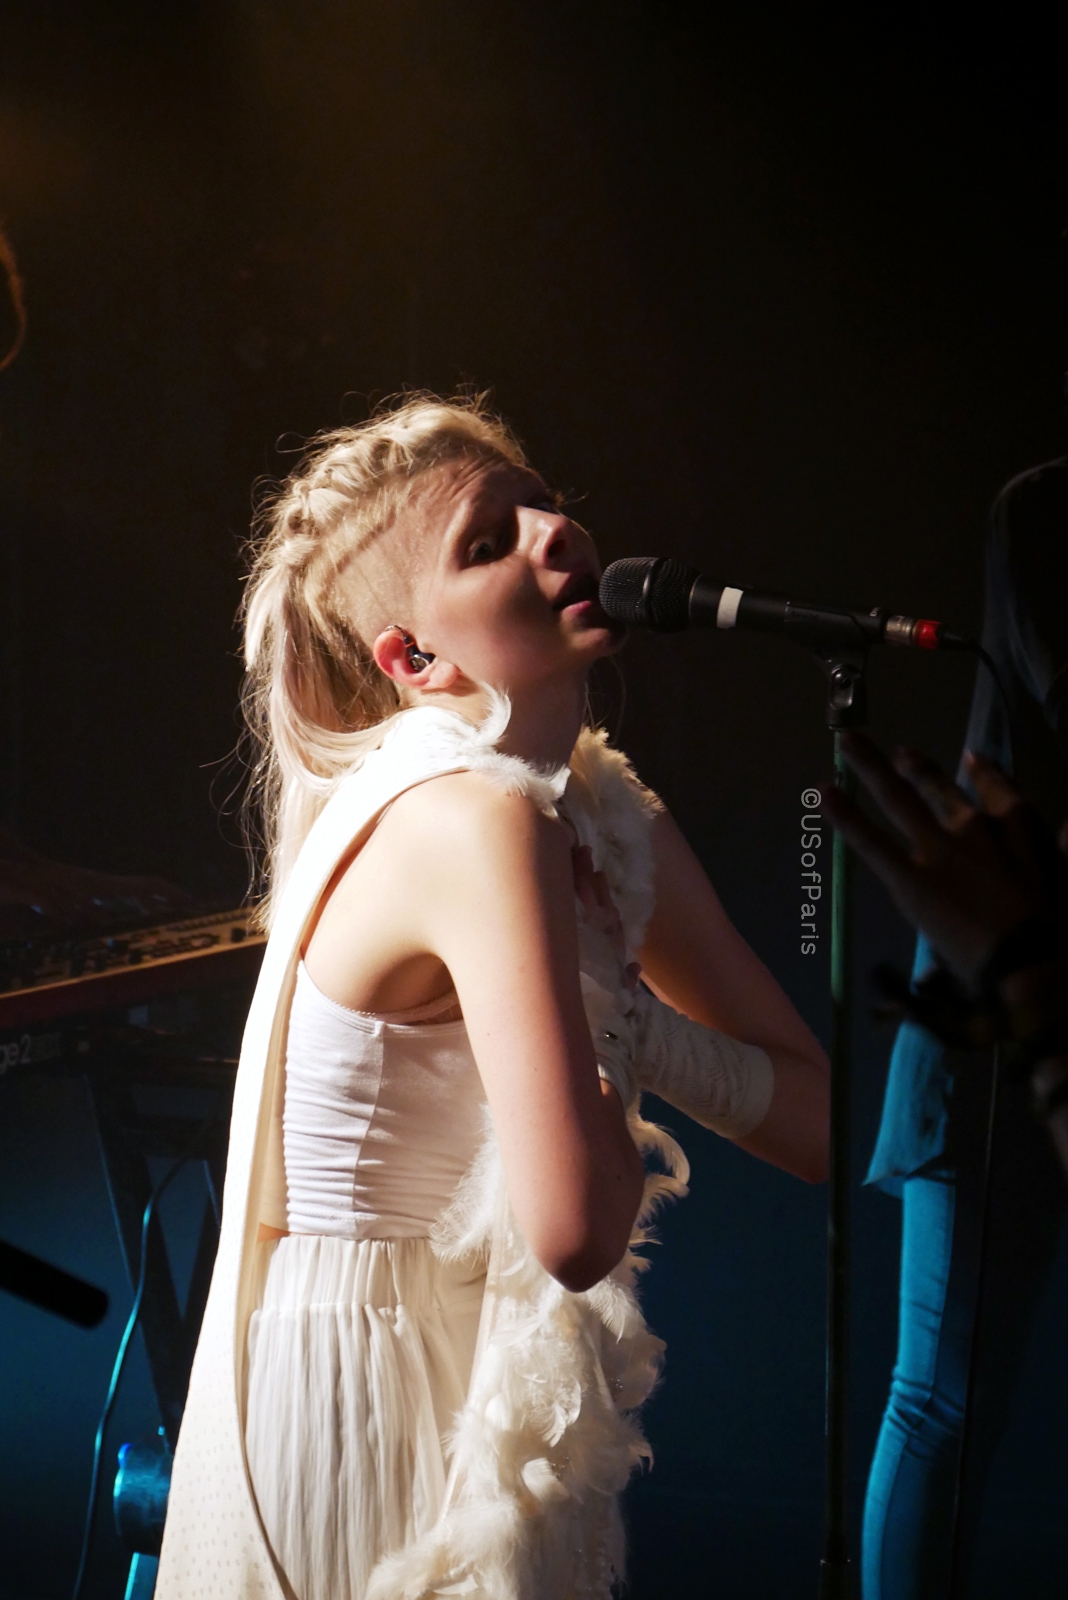 aurora-music-aksnes-singer-chanteuse-live-concert-paris-france-stage-photo-usofparis-blog